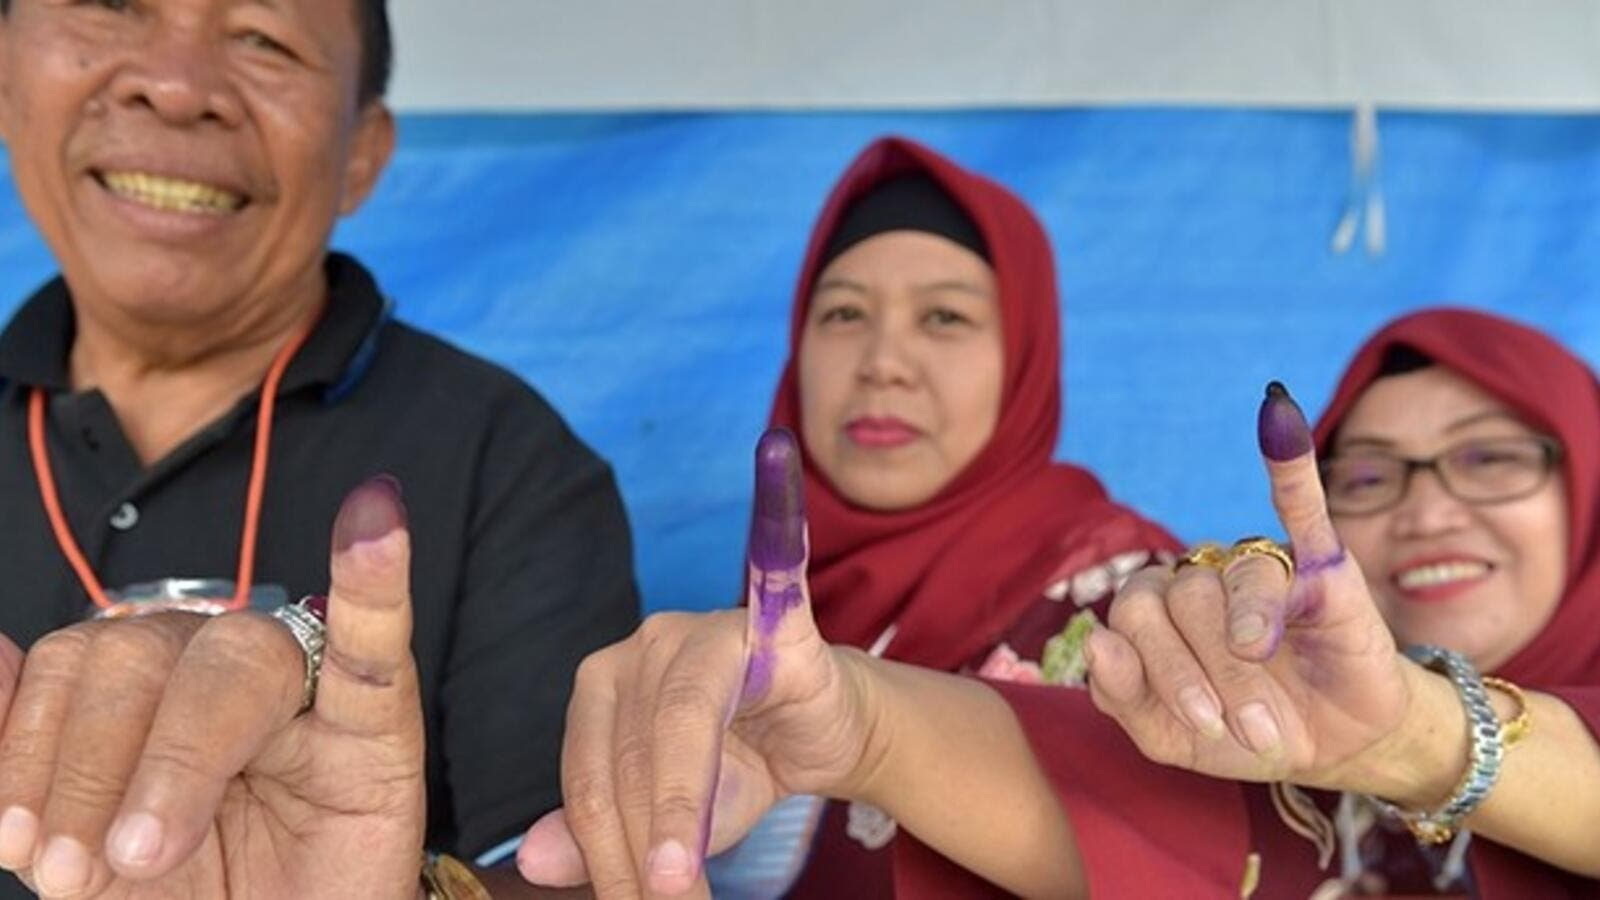 Indonesian people show their inked fingers after casting their ballots during regional elections in Tangerang, Banten on June 27, 2018. (AFP/ File Photo)